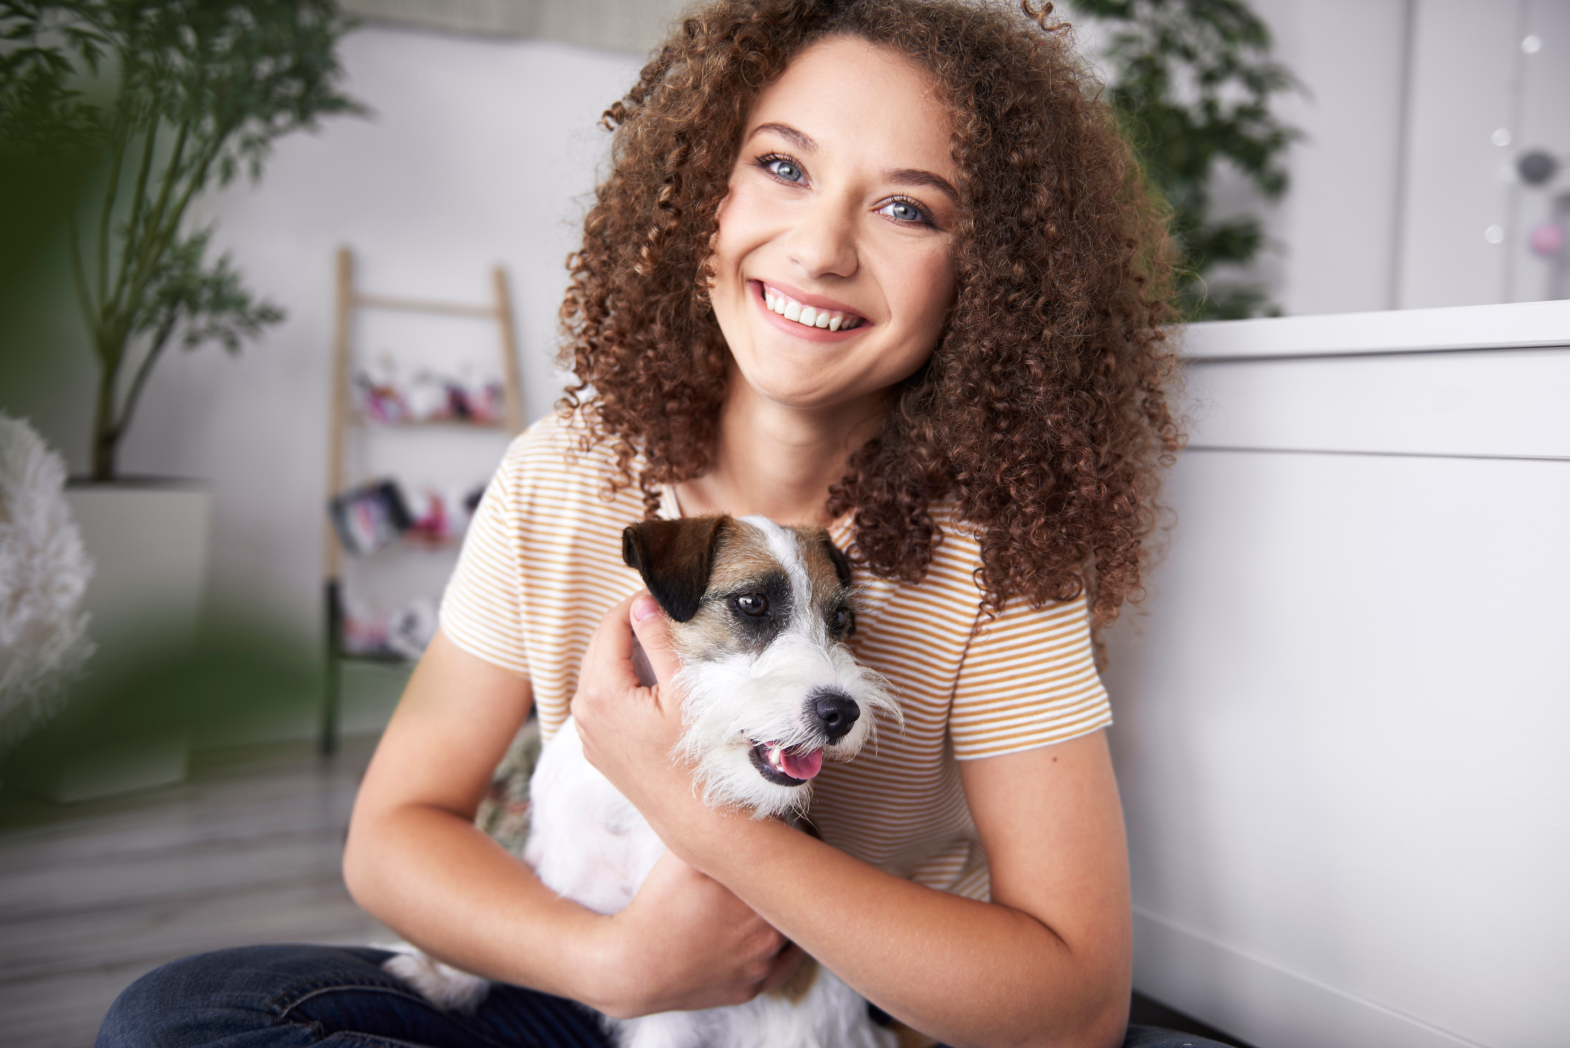 What are the best apps and marketplaces for finding dog groomers?